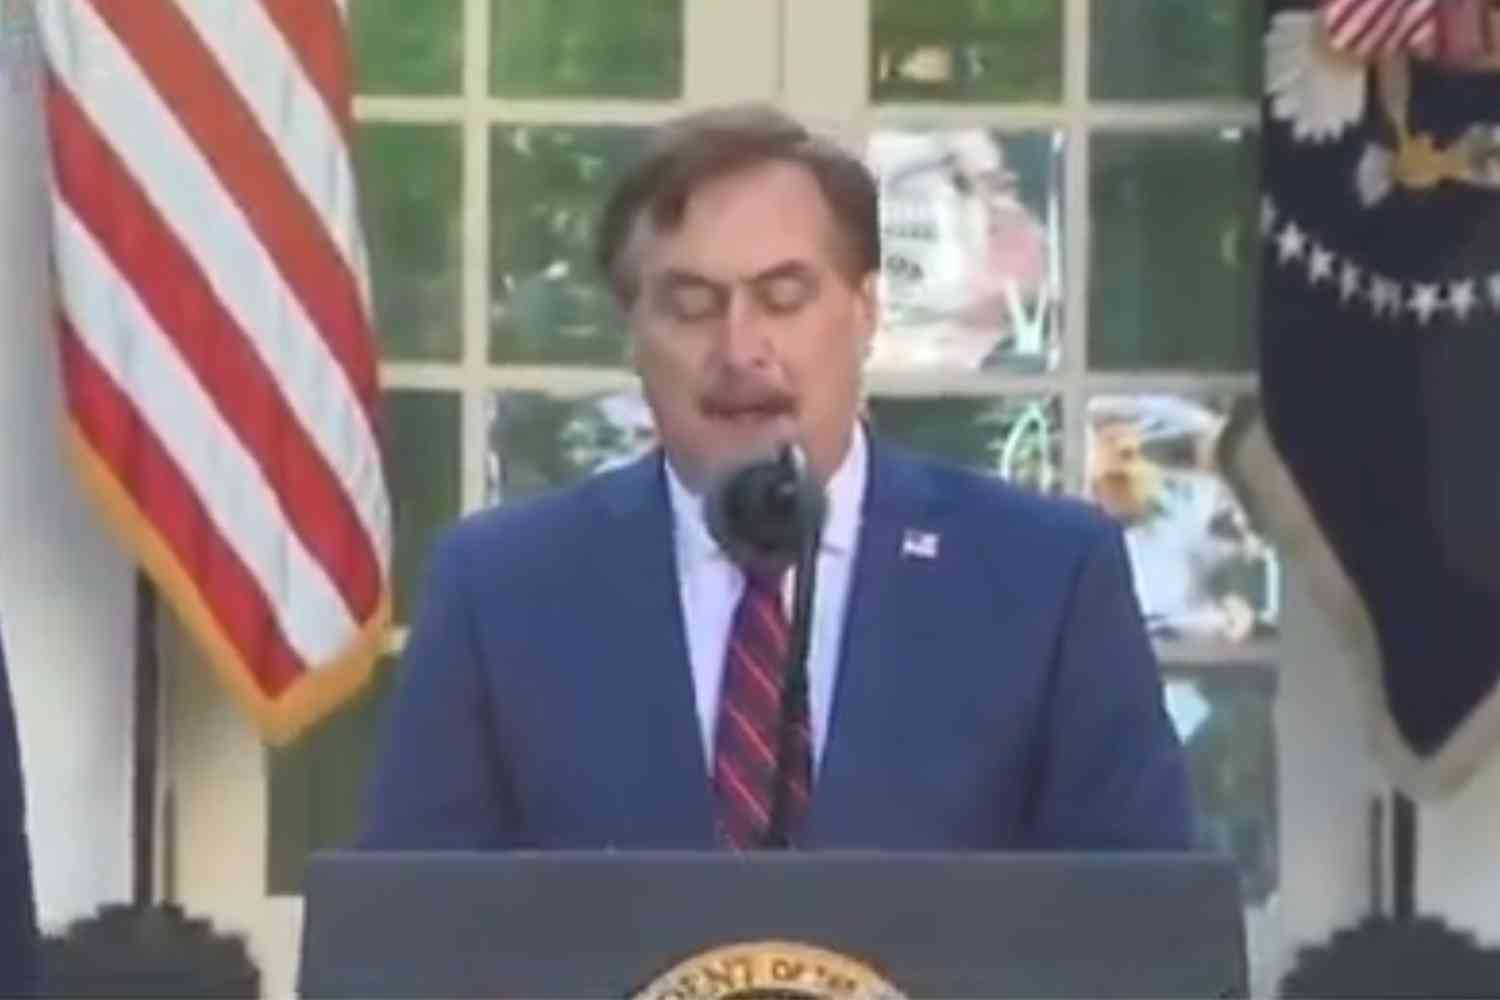 MyPillow CEO Mike Lindell uses press conference to encourage Americans to read their Bibles, turn to God